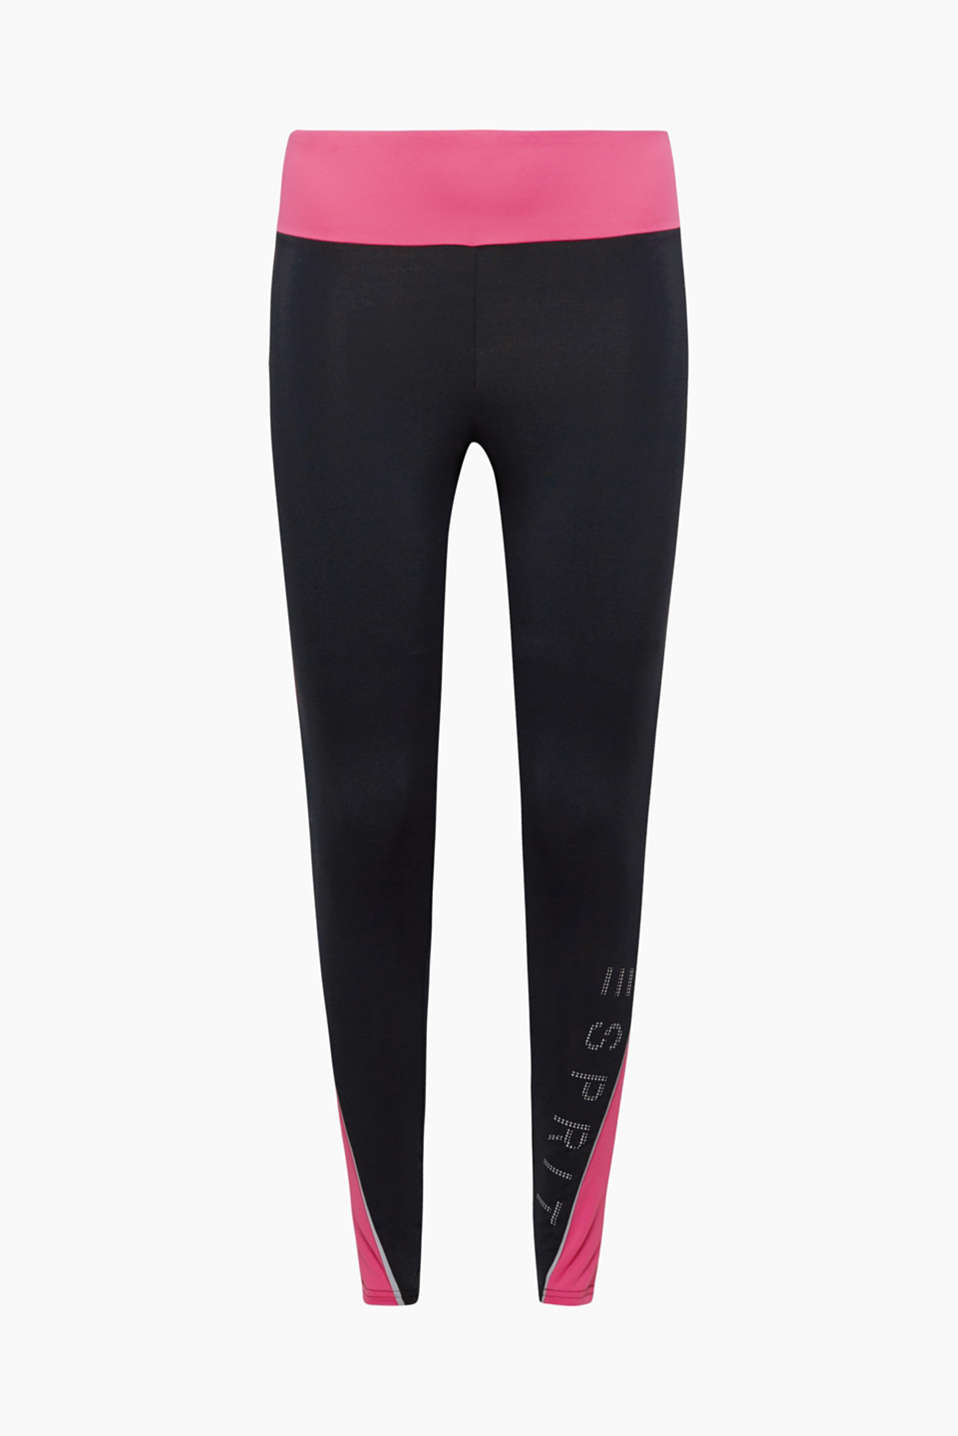 These active leggings with E-Dry technology, pink accents and a logo are perfect for all your sporting activities!